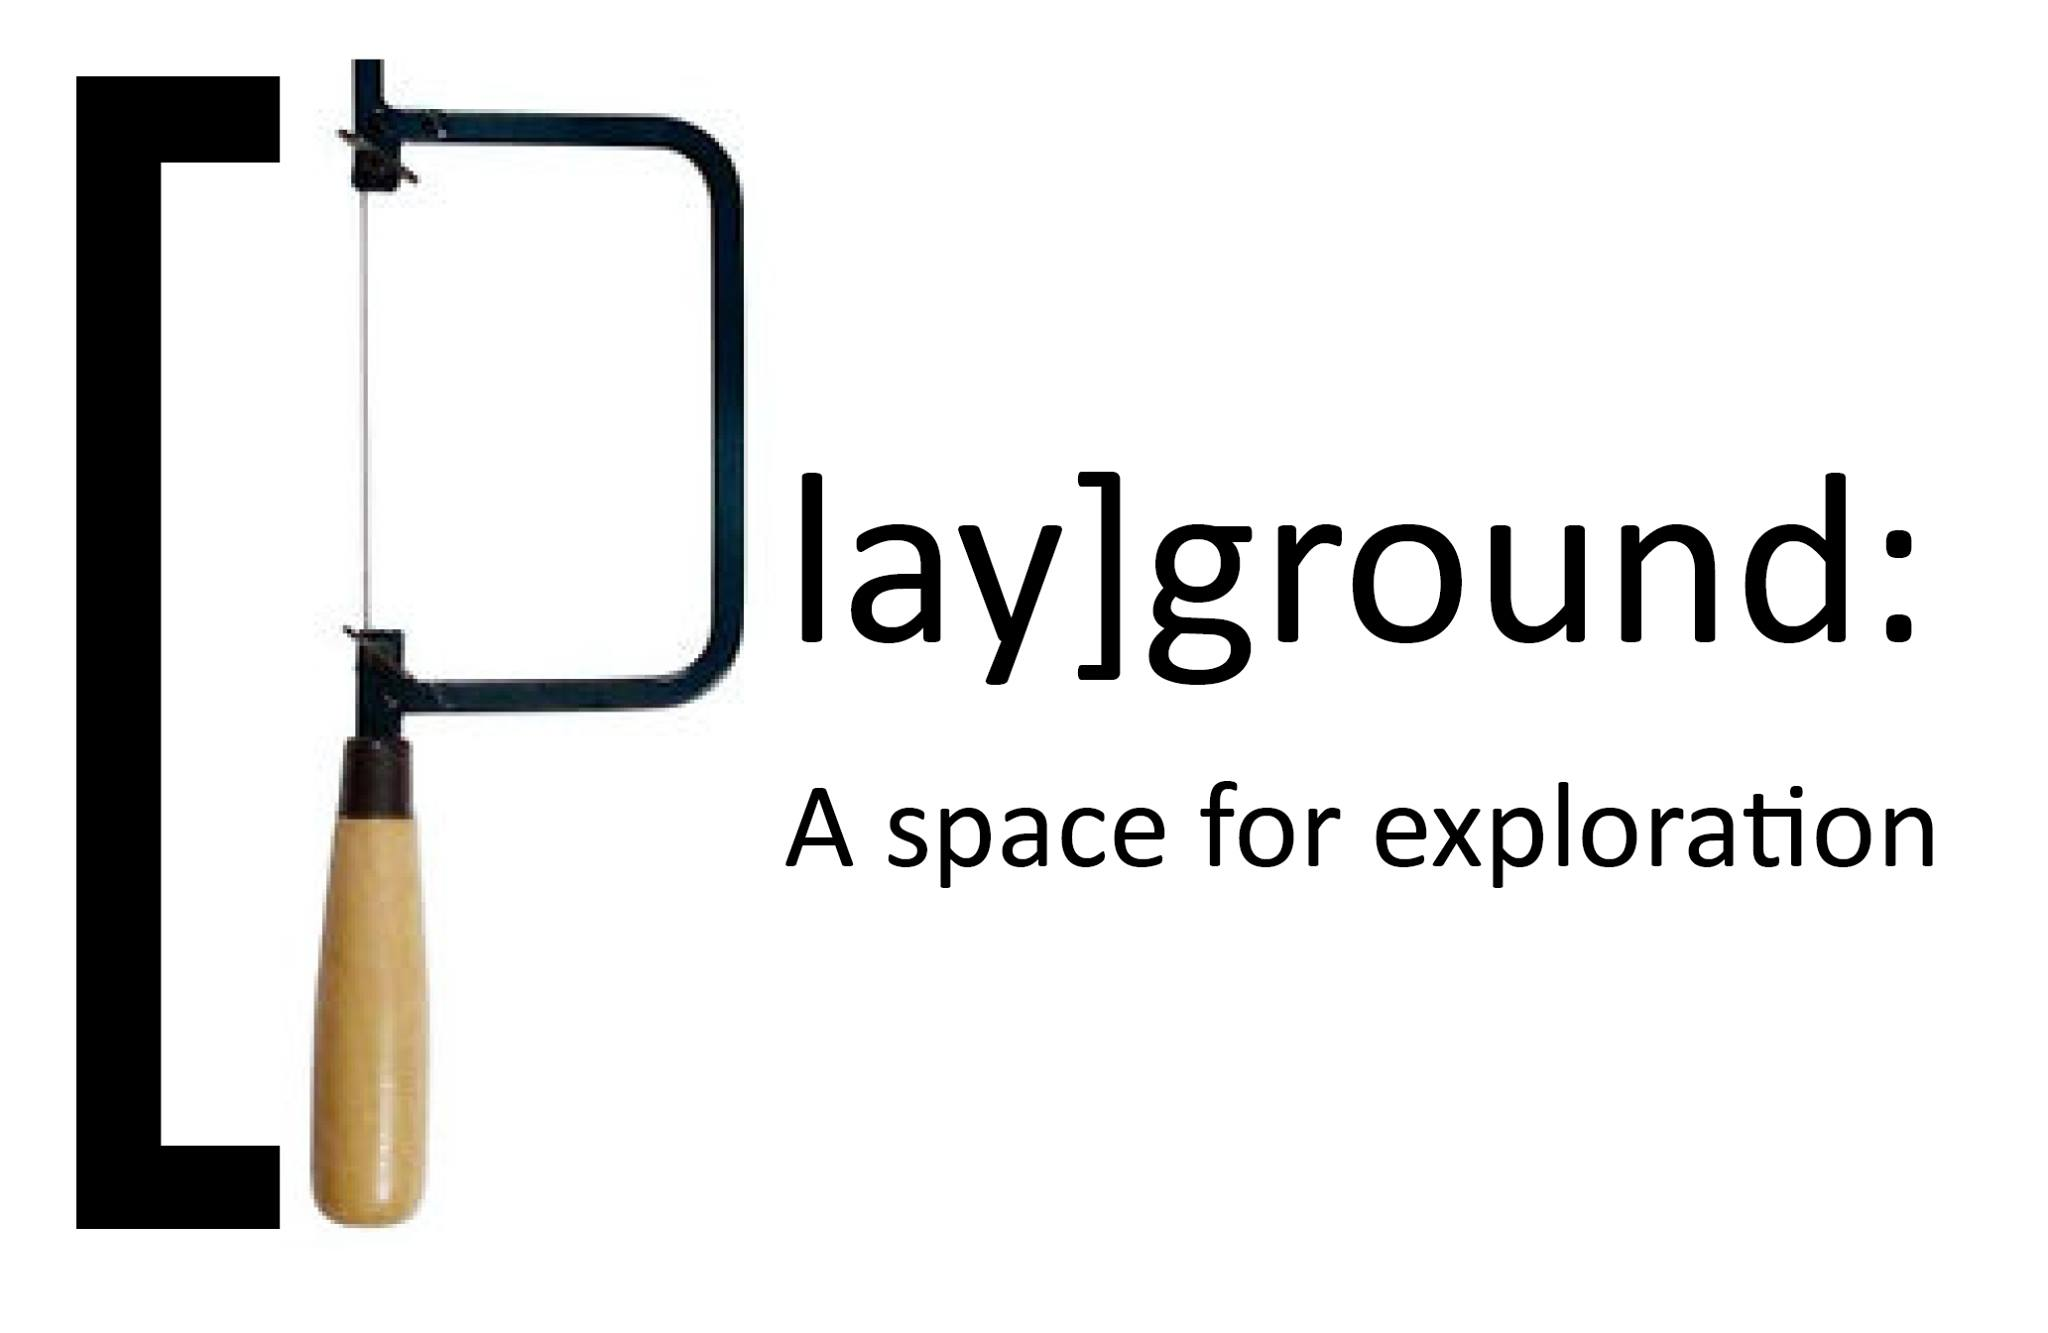 (Play)ground: A space for exploration - March 28th - April 25th 2019Port Moody Arts Centre2425 Saint Johns Street, Port MoodyThe Vancouver Metal Arts Association, with the support of the Craft Council of British Columbia, will be hosting this national exhibition at the Port Moody Arts Centre.Opening Reception: March 28th @ 6-8pmMon, Wed, Fri 12pm-8pmTue & Thurs 10am - 8pmSat & Sun 10am - 4pm